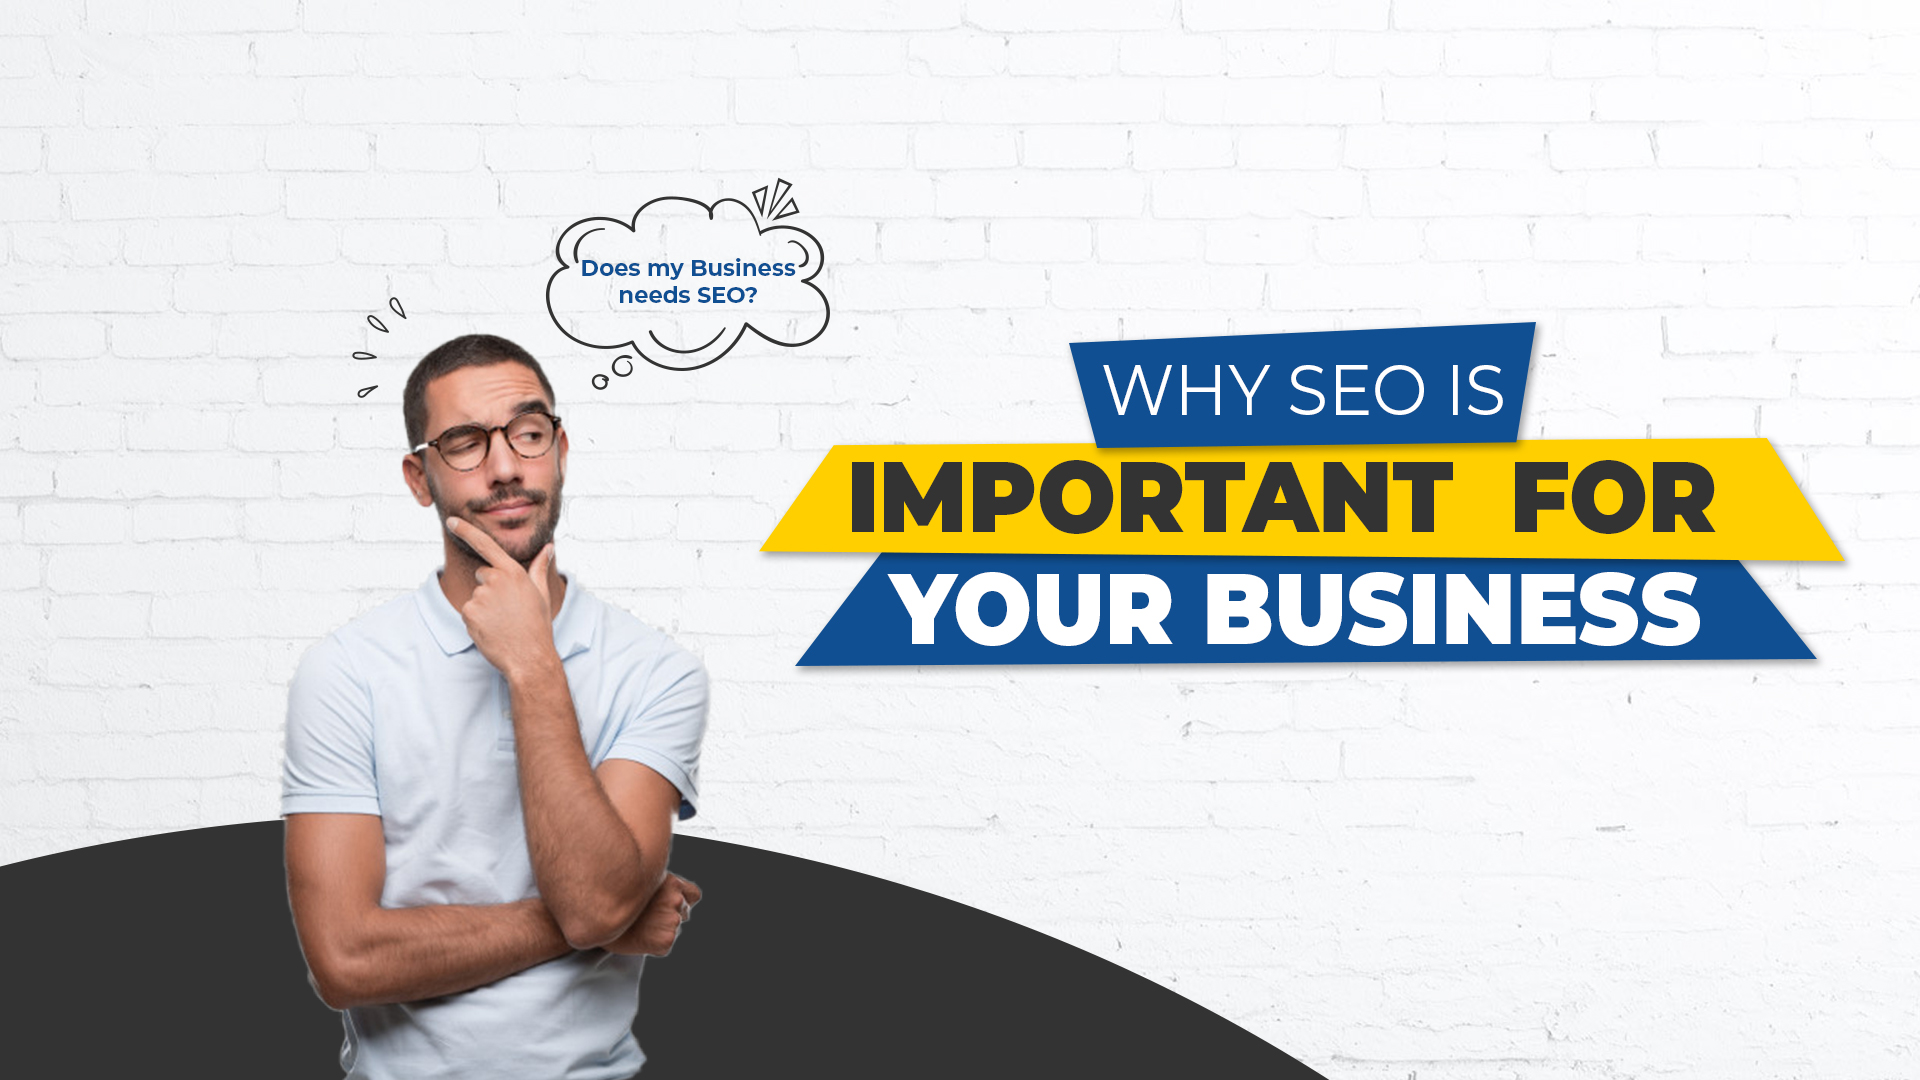 SEO in Business and importance of SEO